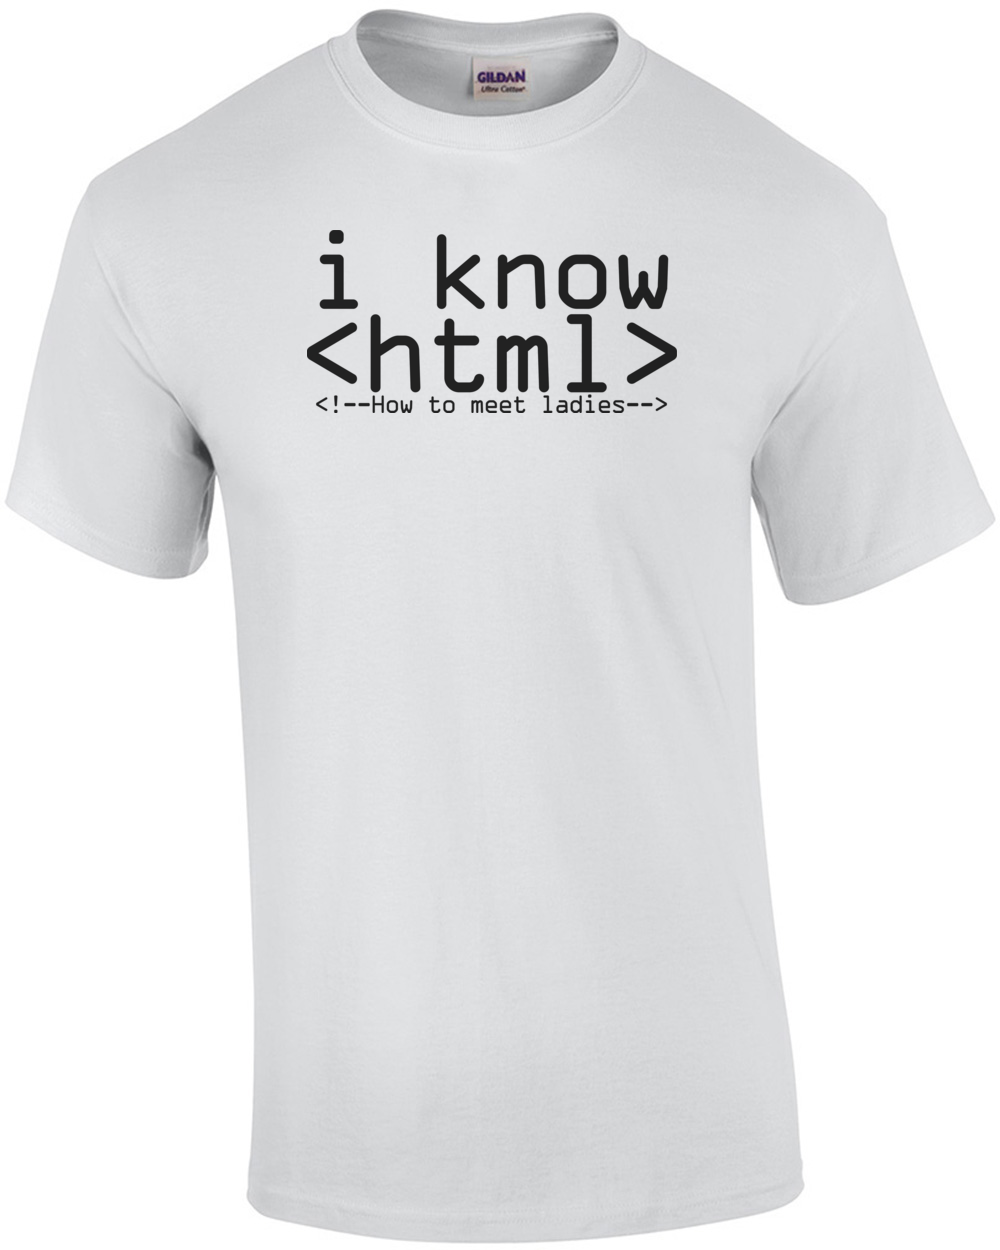 a9bbcfc8f0d74 i-know-html-funny-nerd-tshirt-mens-regular-white 2 1 1.png